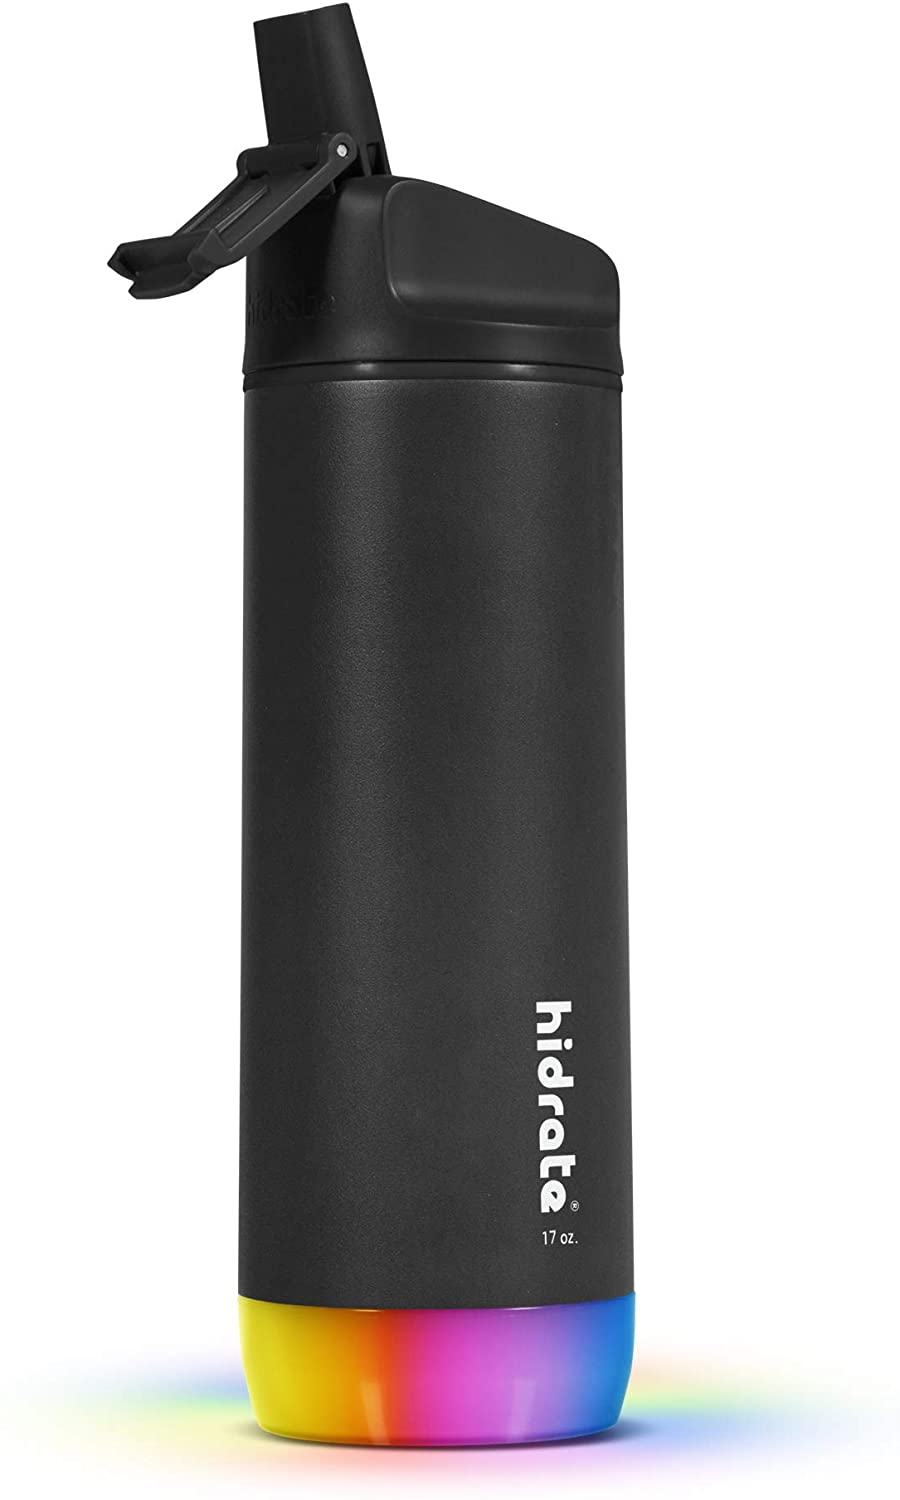 Hidrate Spark Steel Smart Water Bottle, Tracks Water Intake & Glows to Remind You to Stay Hydrated - Straw Lid